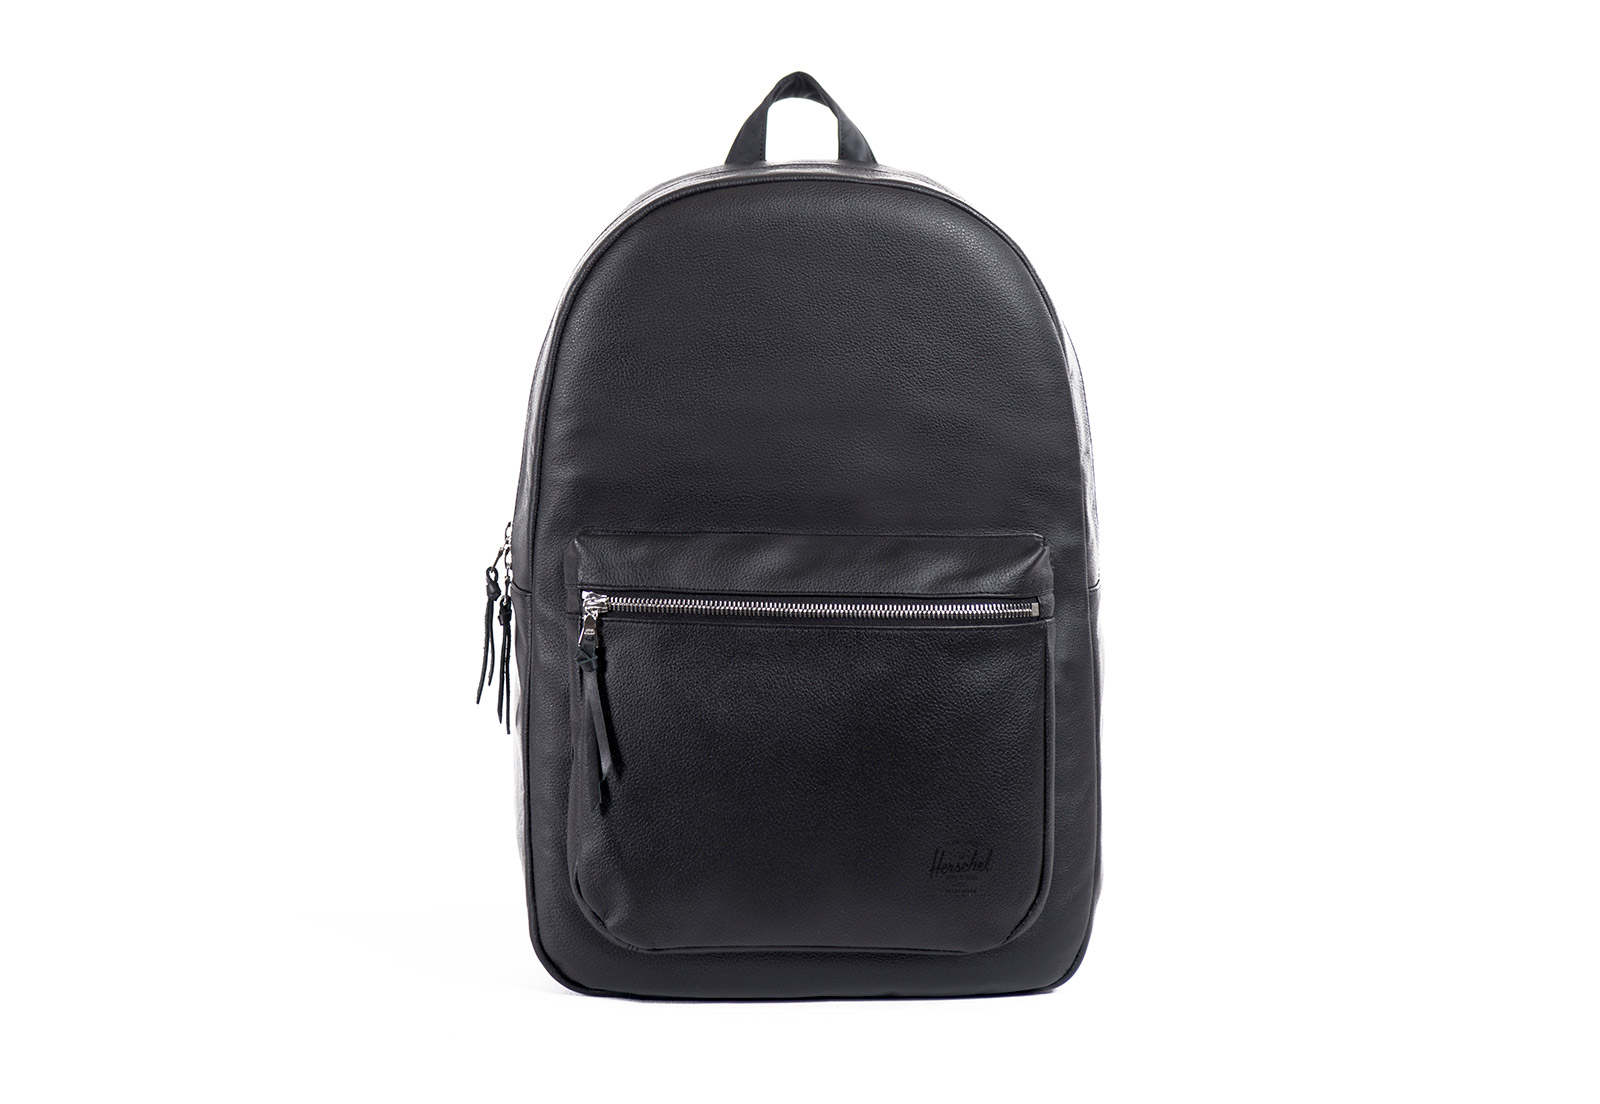 Herschel Leather Backpack qoLV5W8X